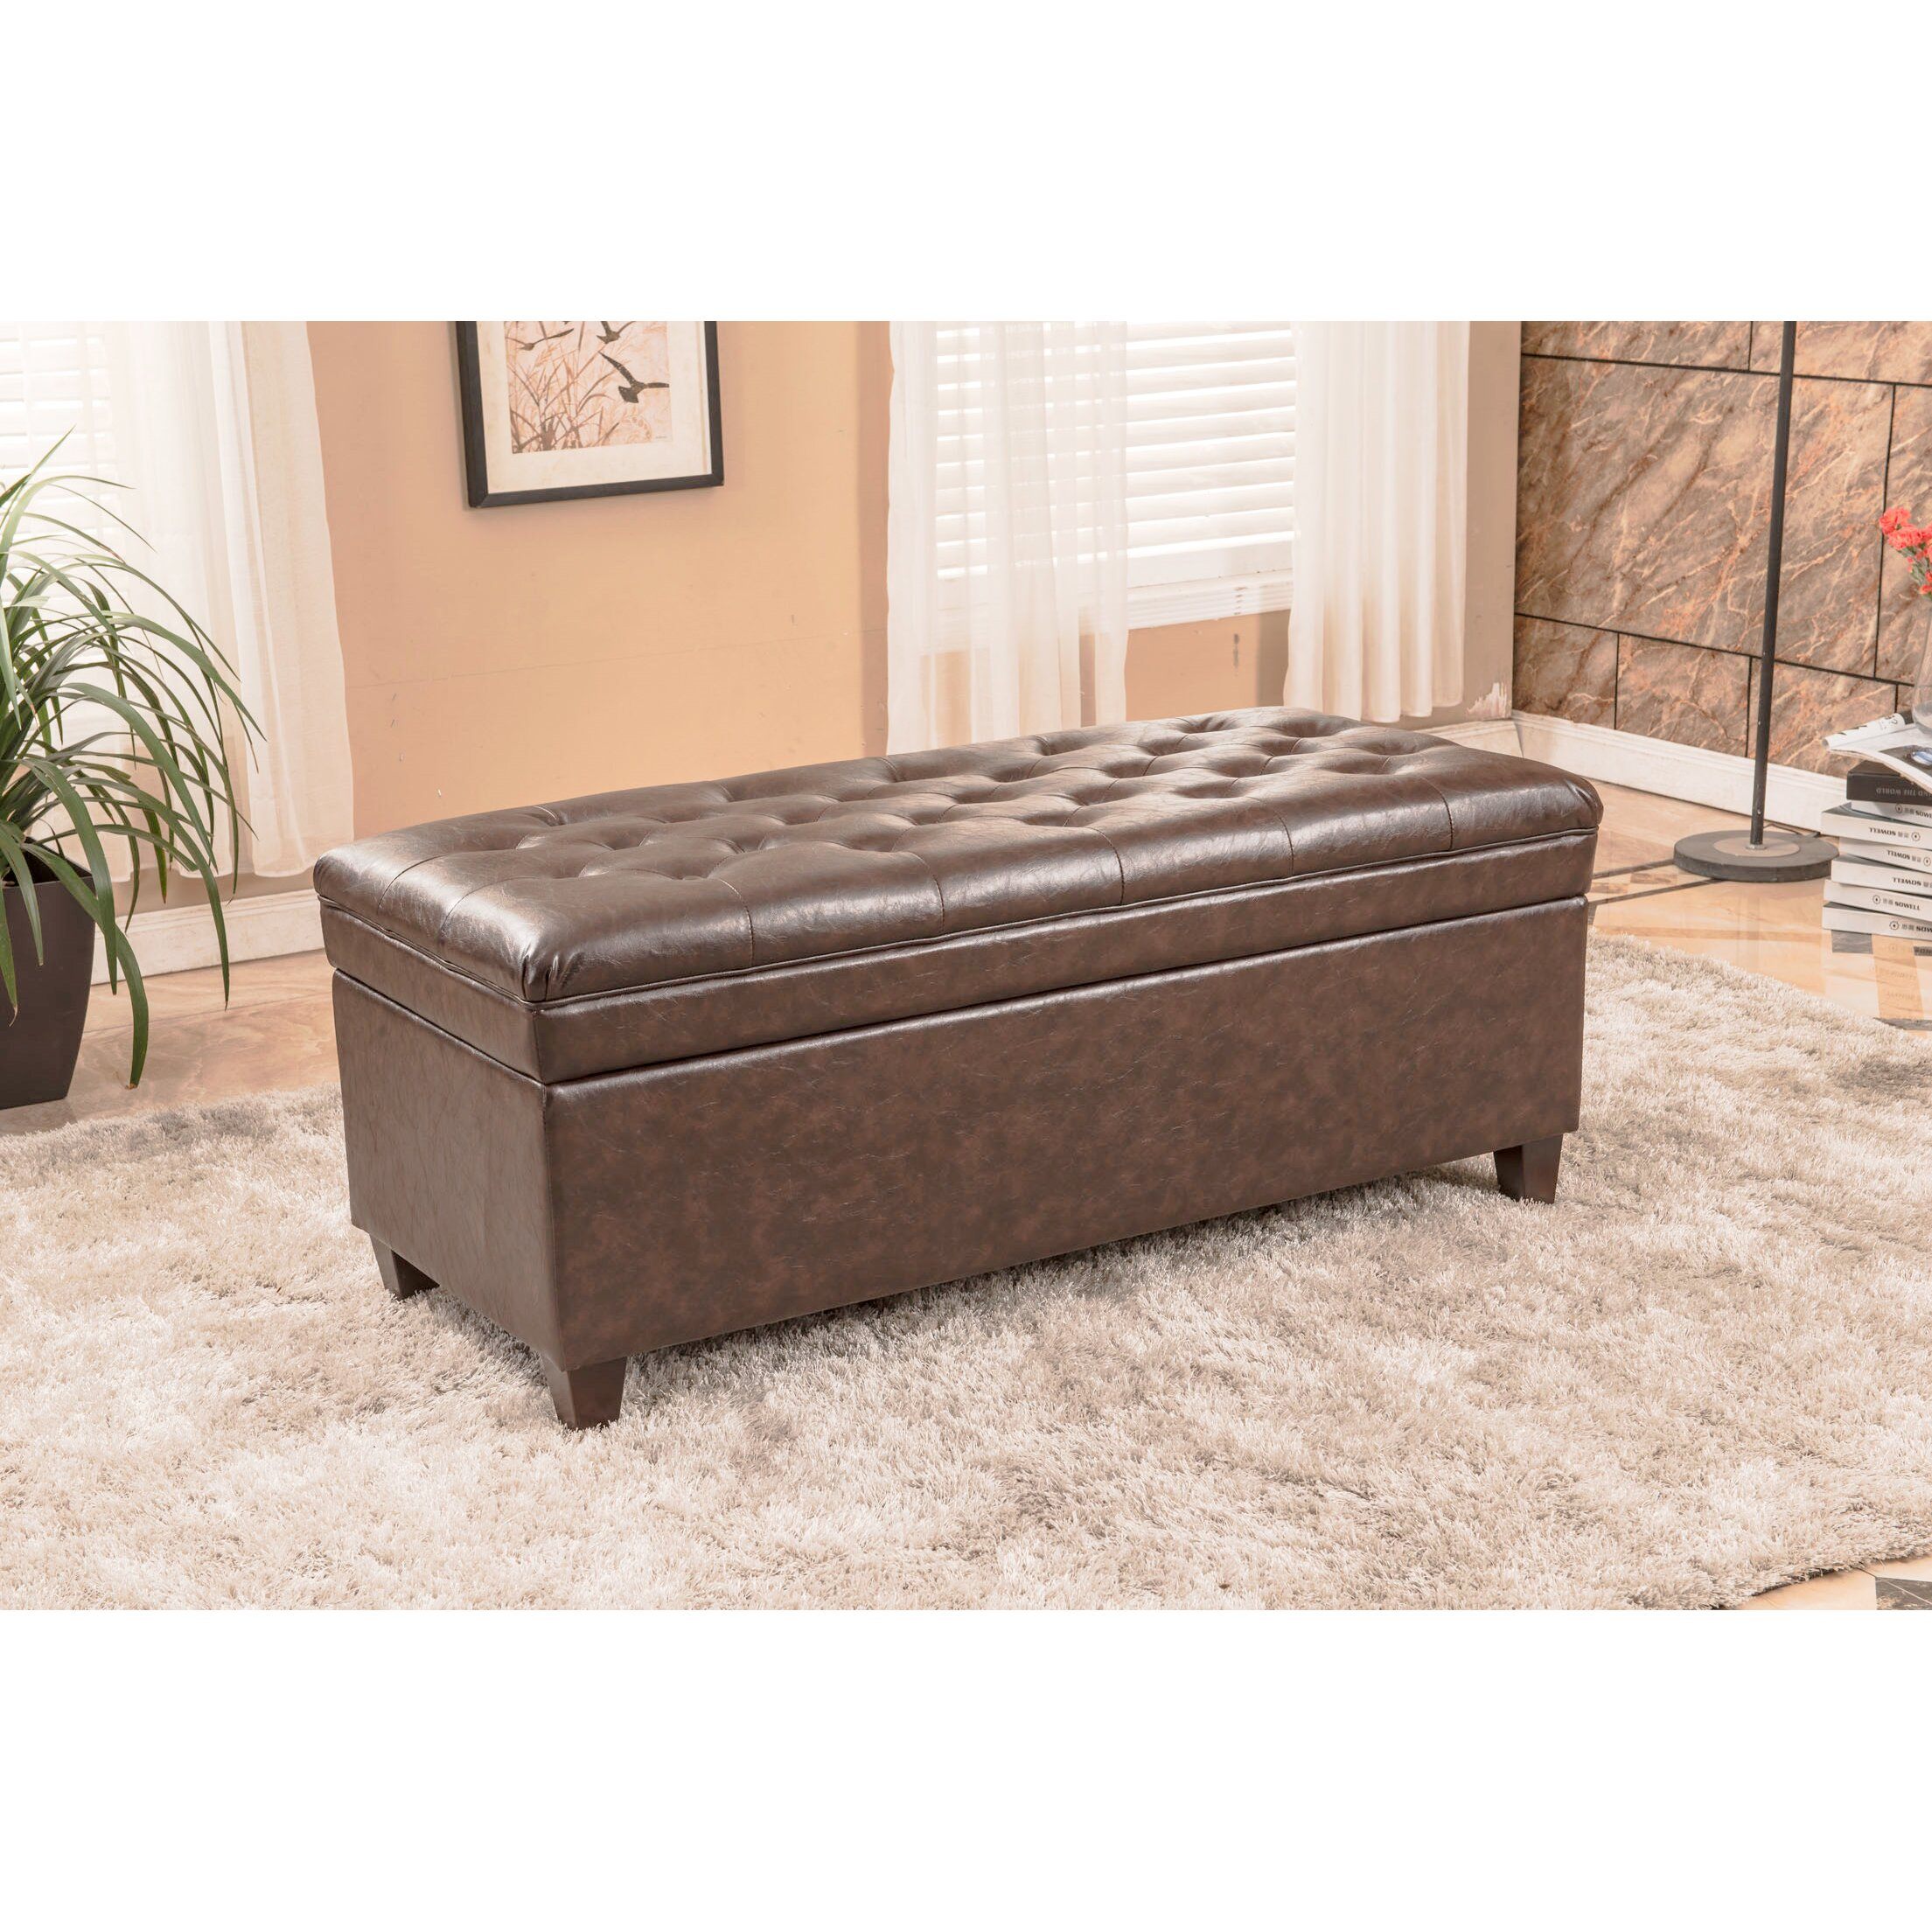 Bellasario Collection Upholstered Storage Bedroom Bench Reviews Wayfair